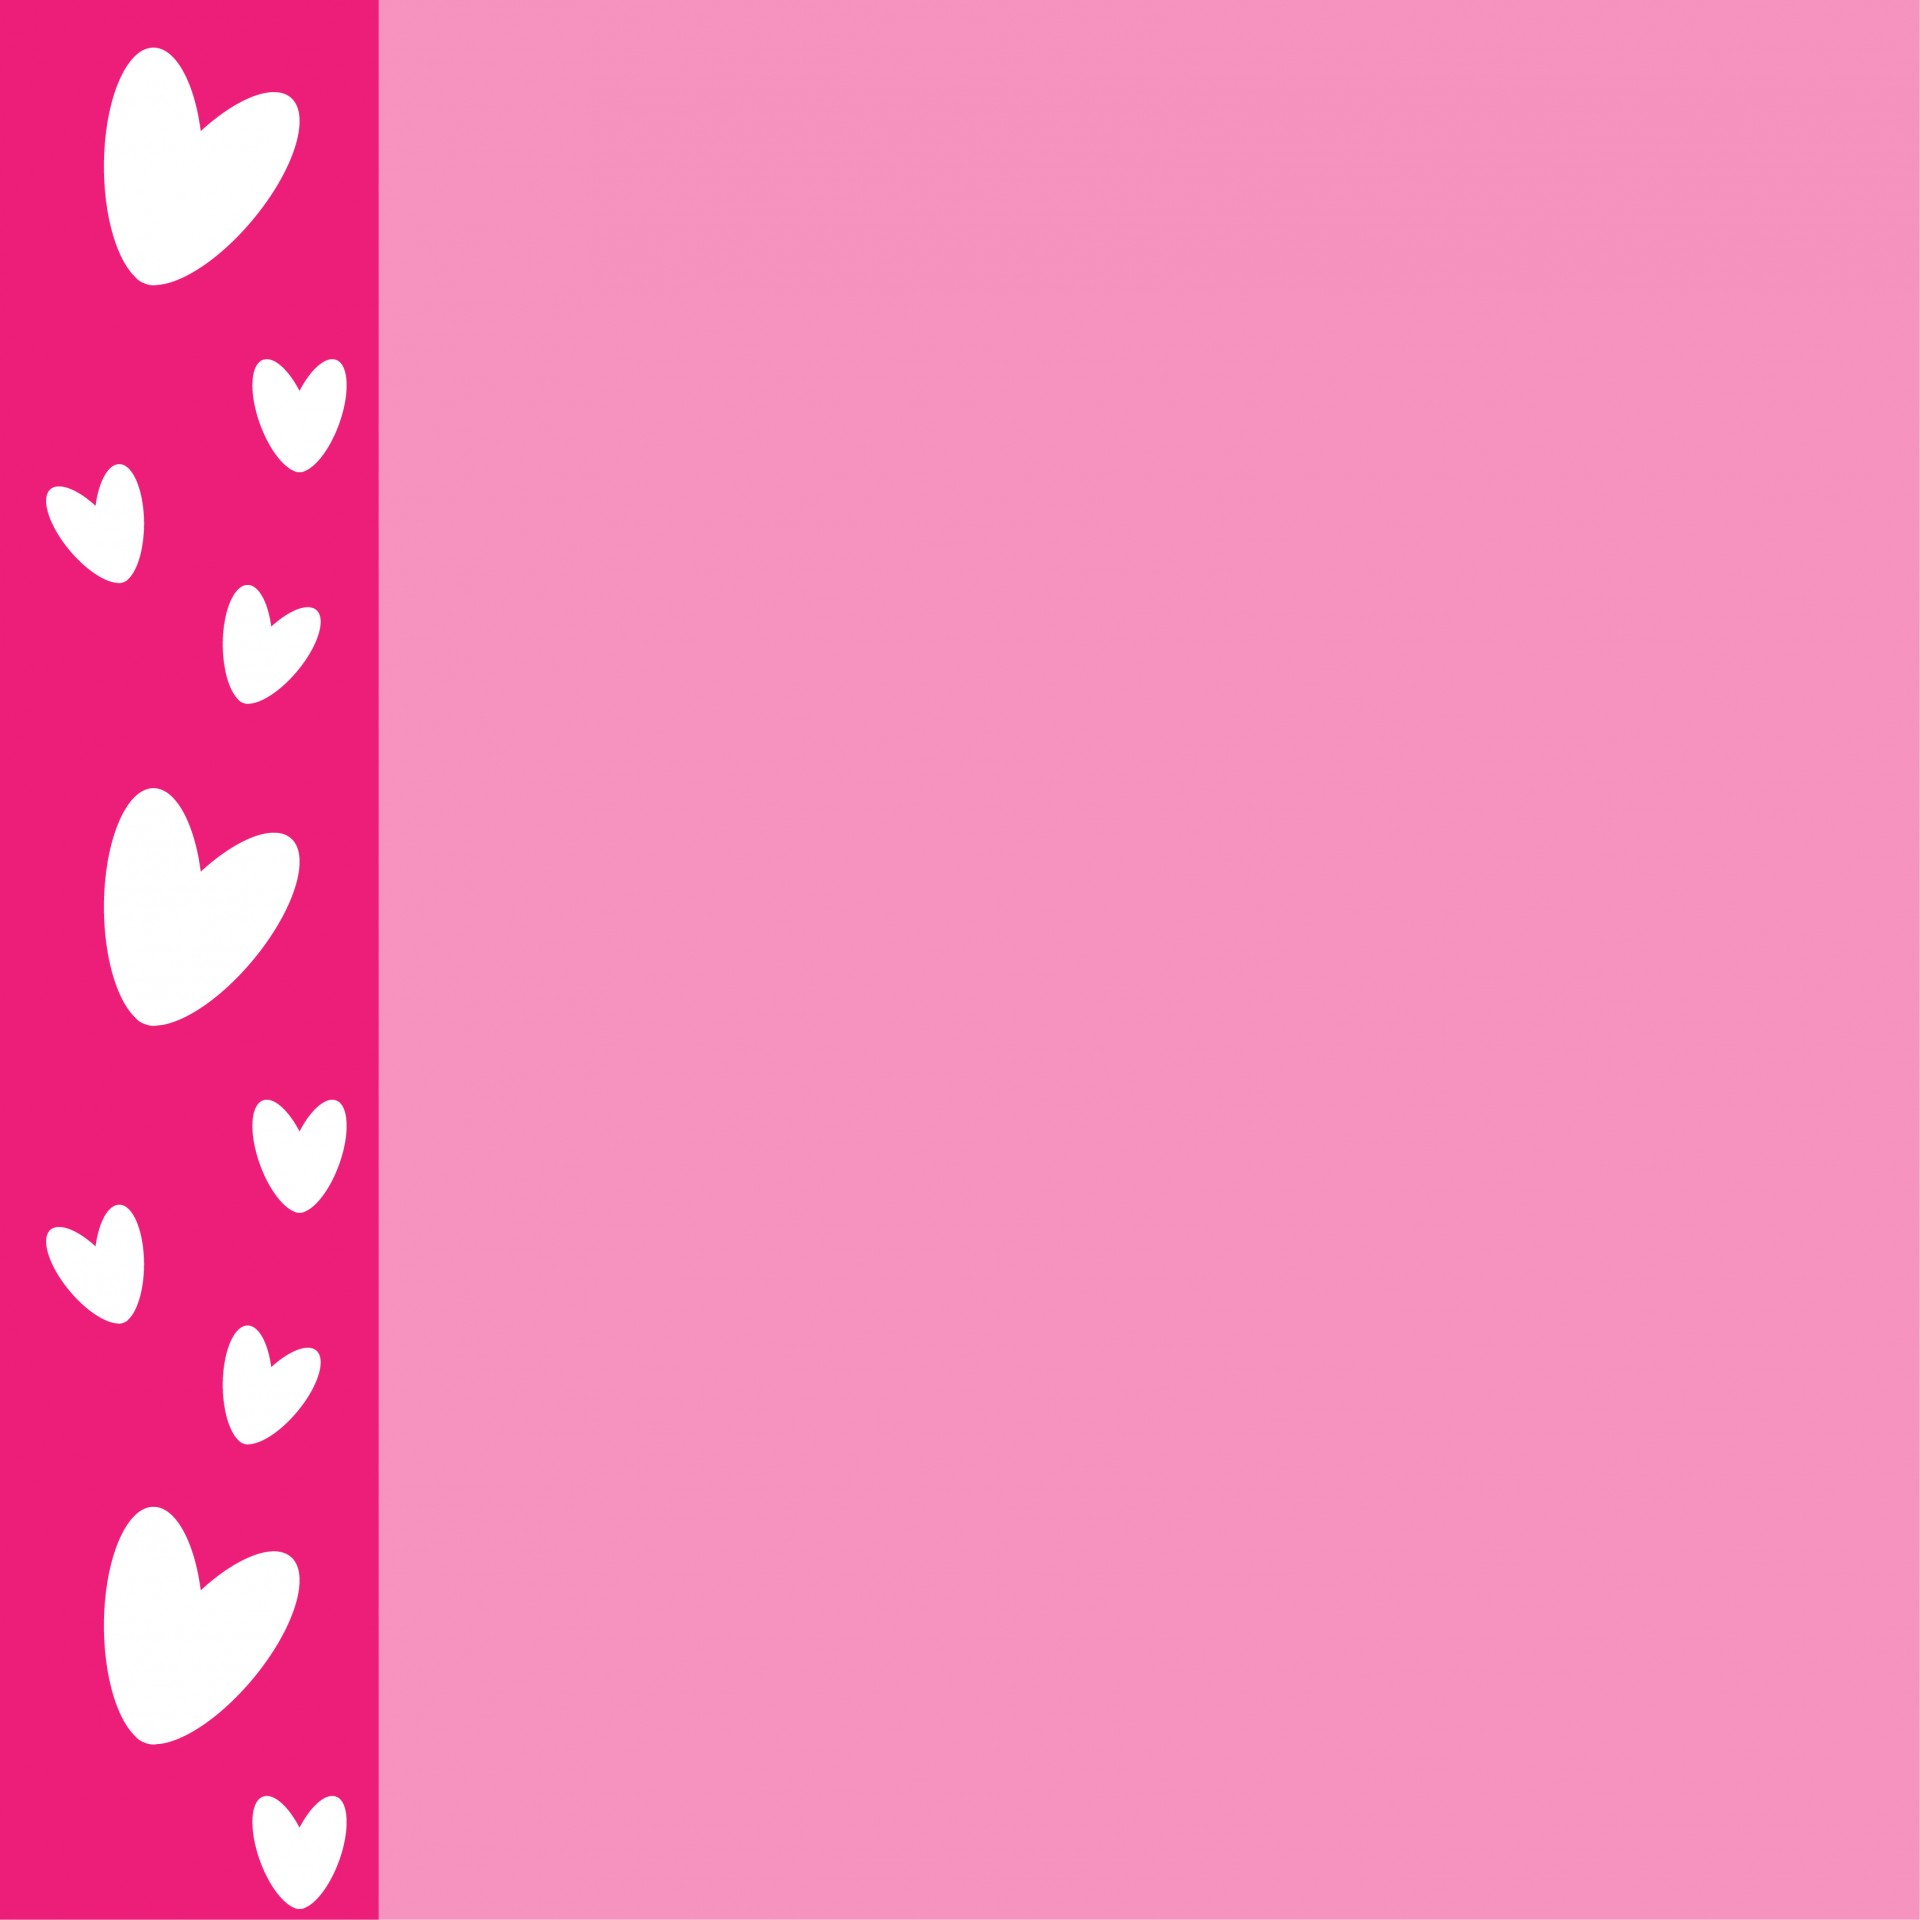 Pink Hearts Card Free Stock Photo Public Domain Pictures